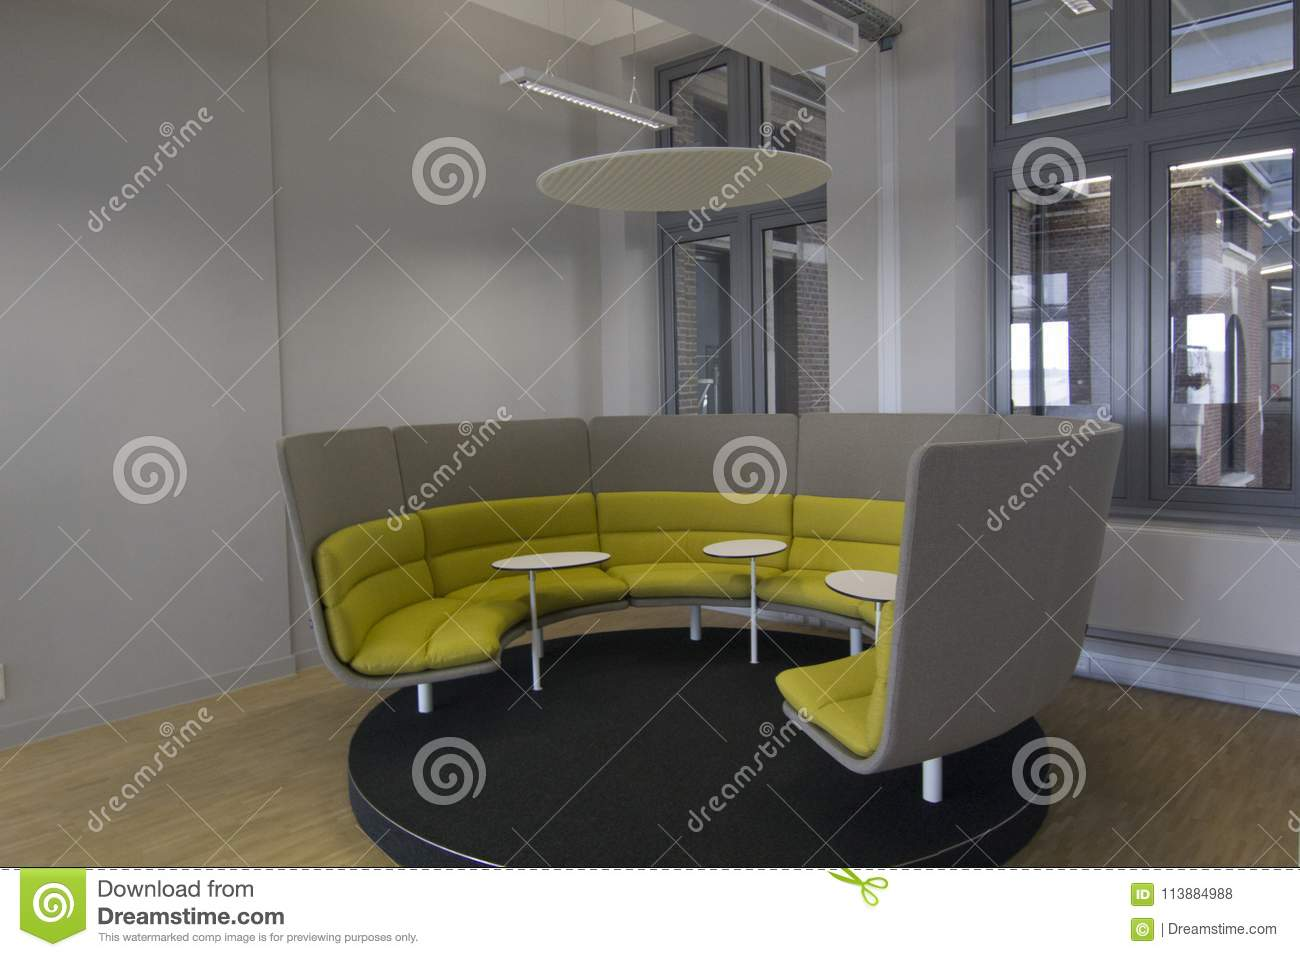 Circular office seating area design for small meetings